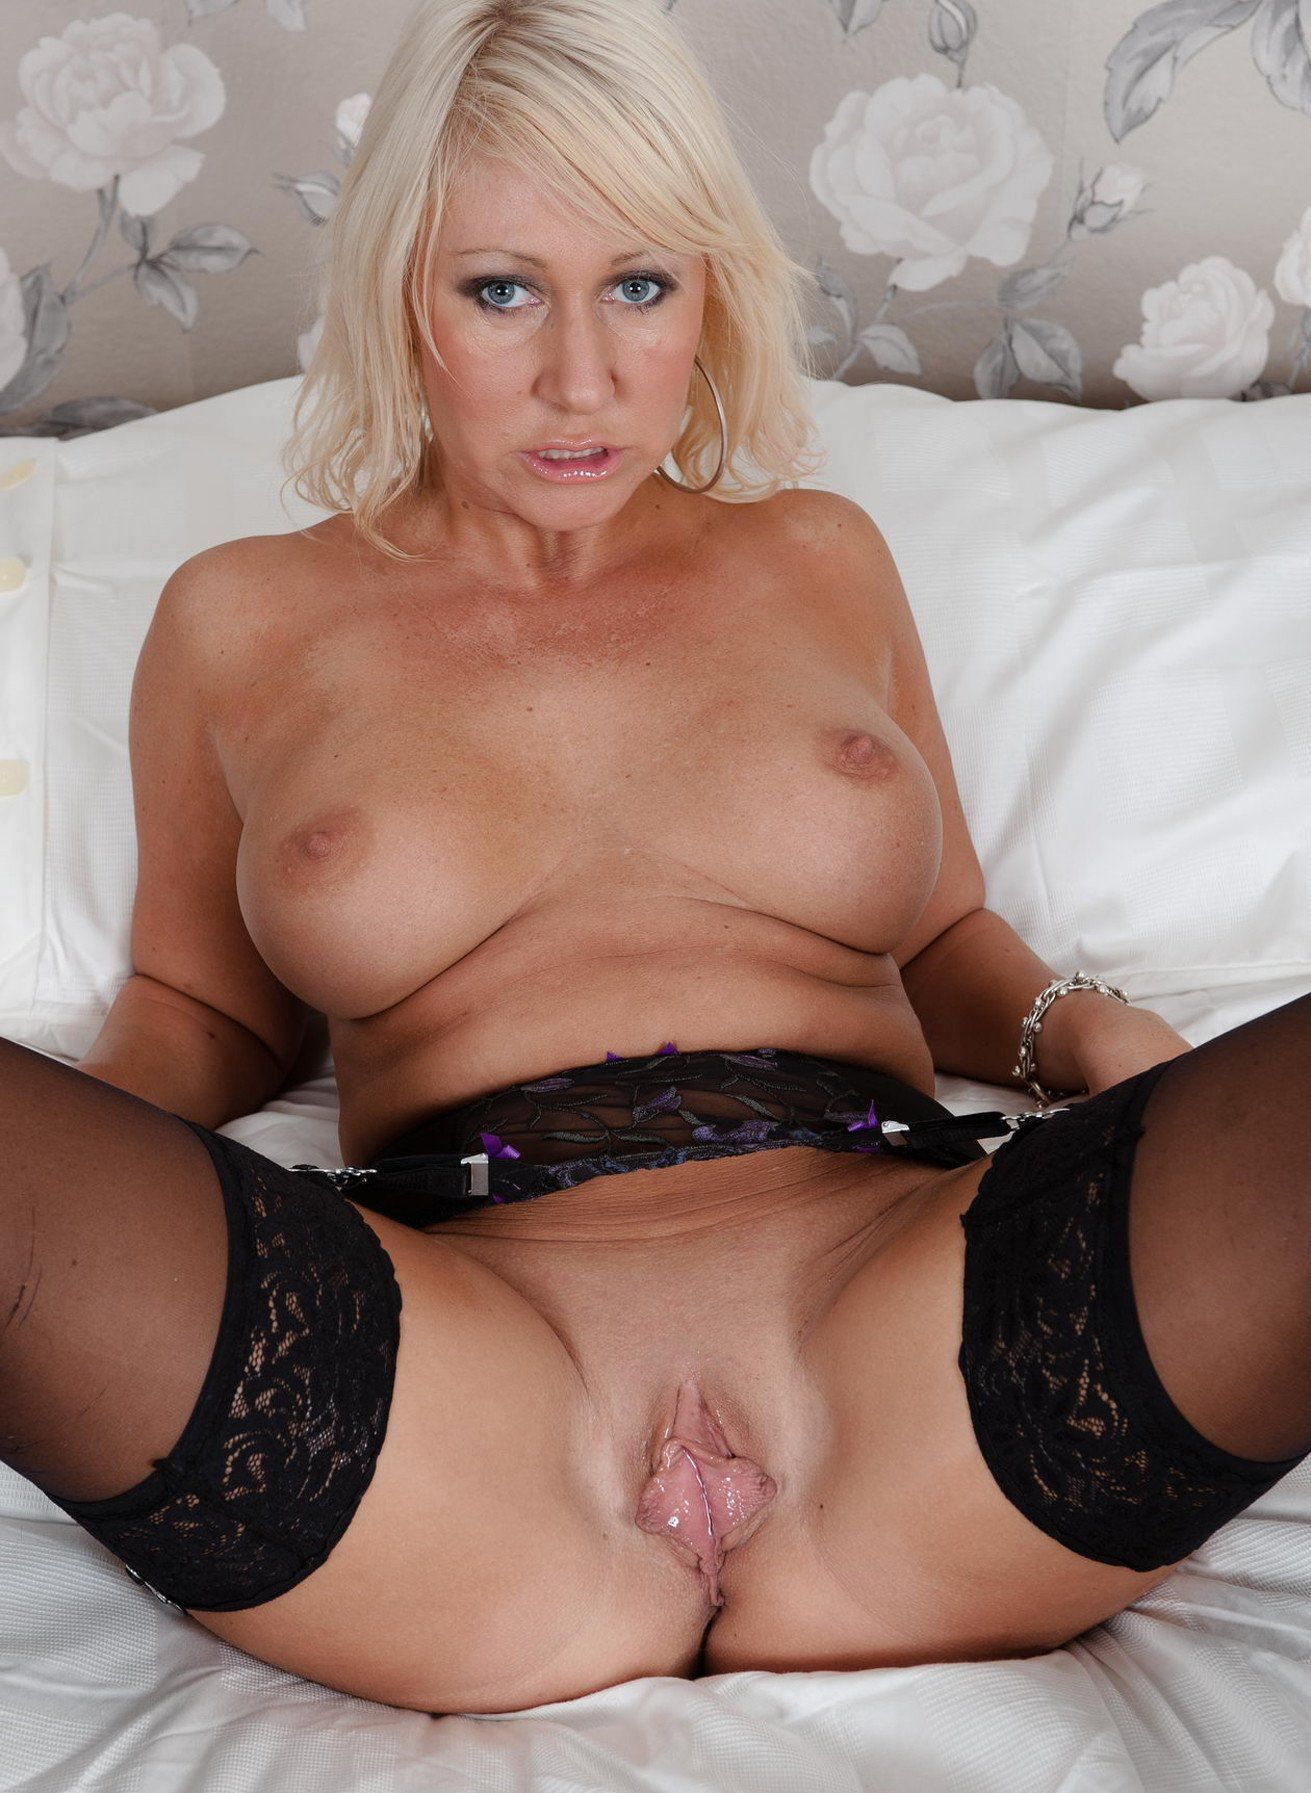 Mature big tit blonde porn star still that?